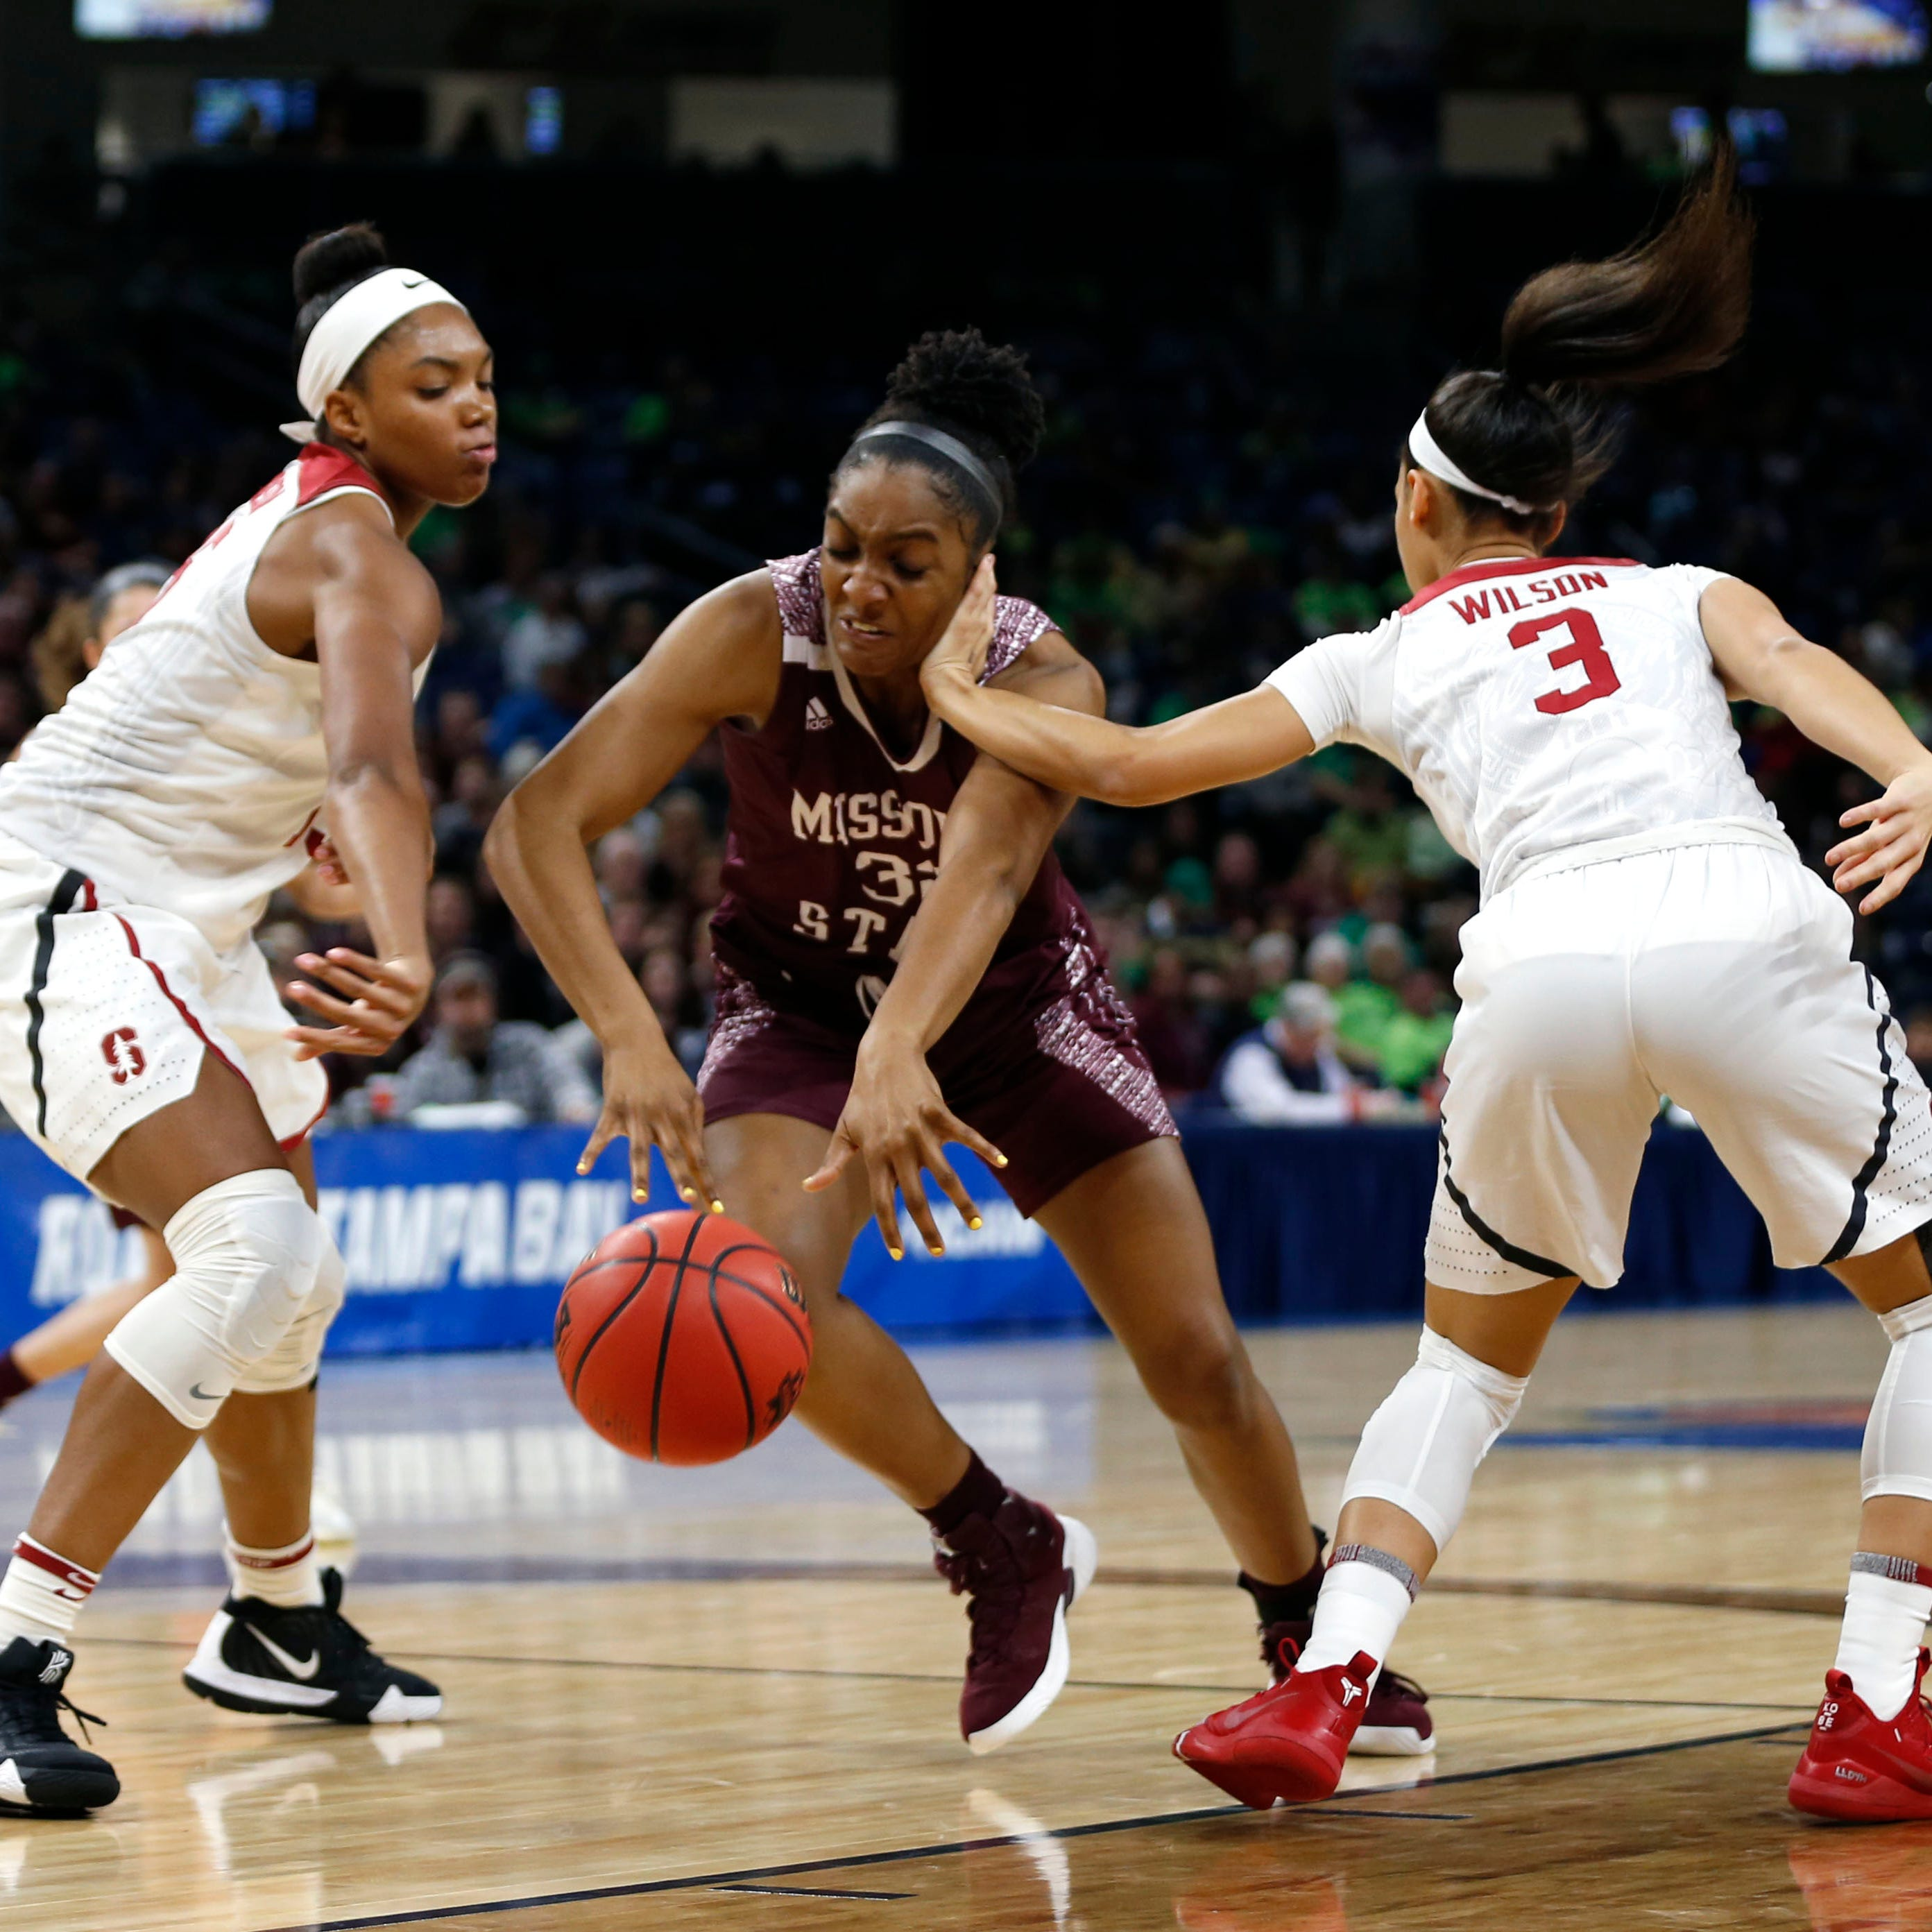 MSU Lady Bears' magical season ends in Sweet 16 loss to Stanford